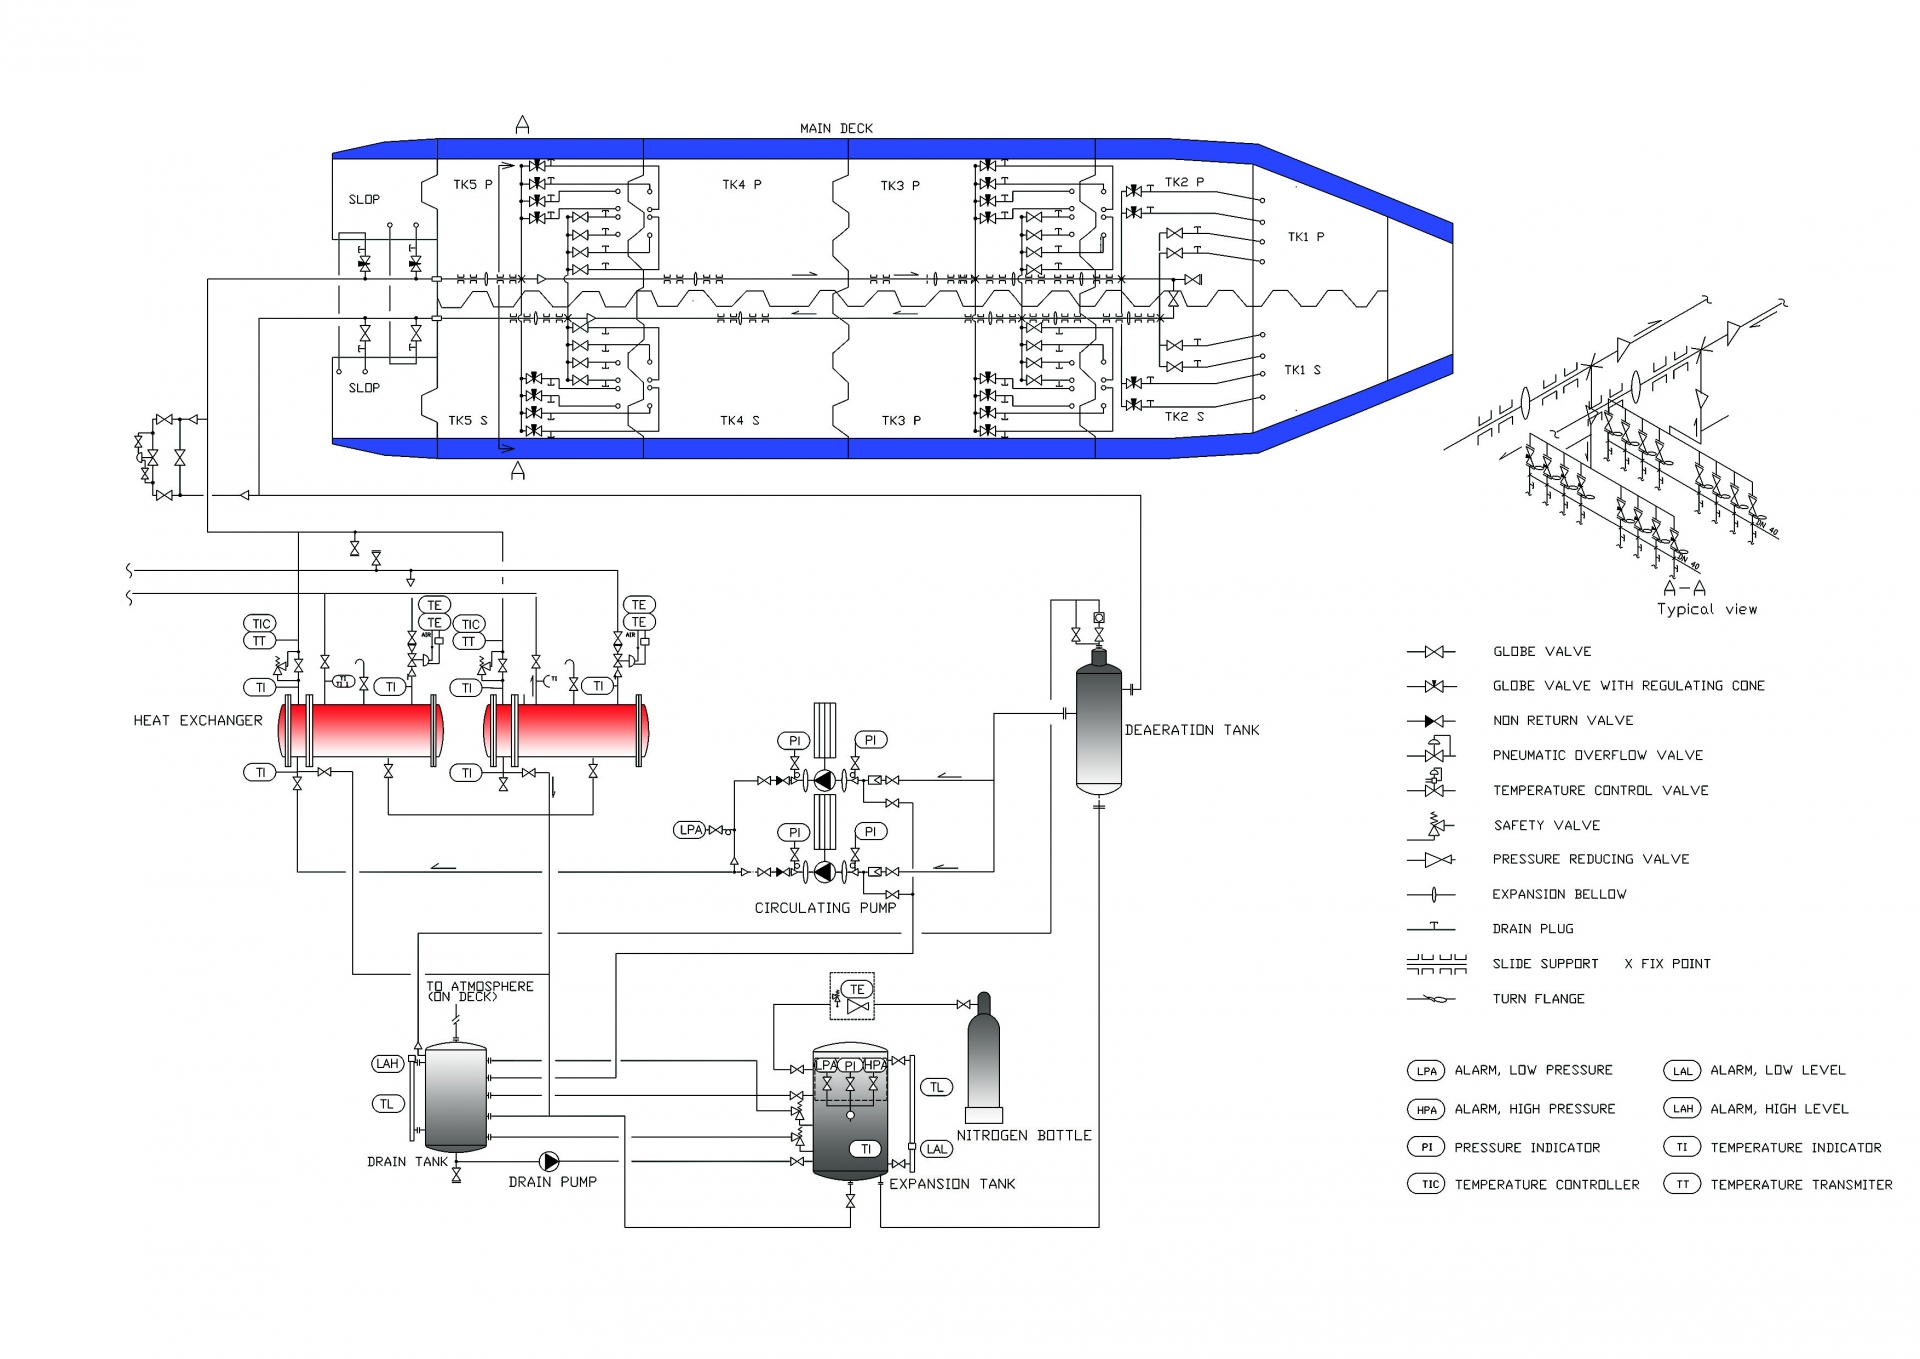 medium resolution of flow diagram cargo heating flow diagram cargo heating